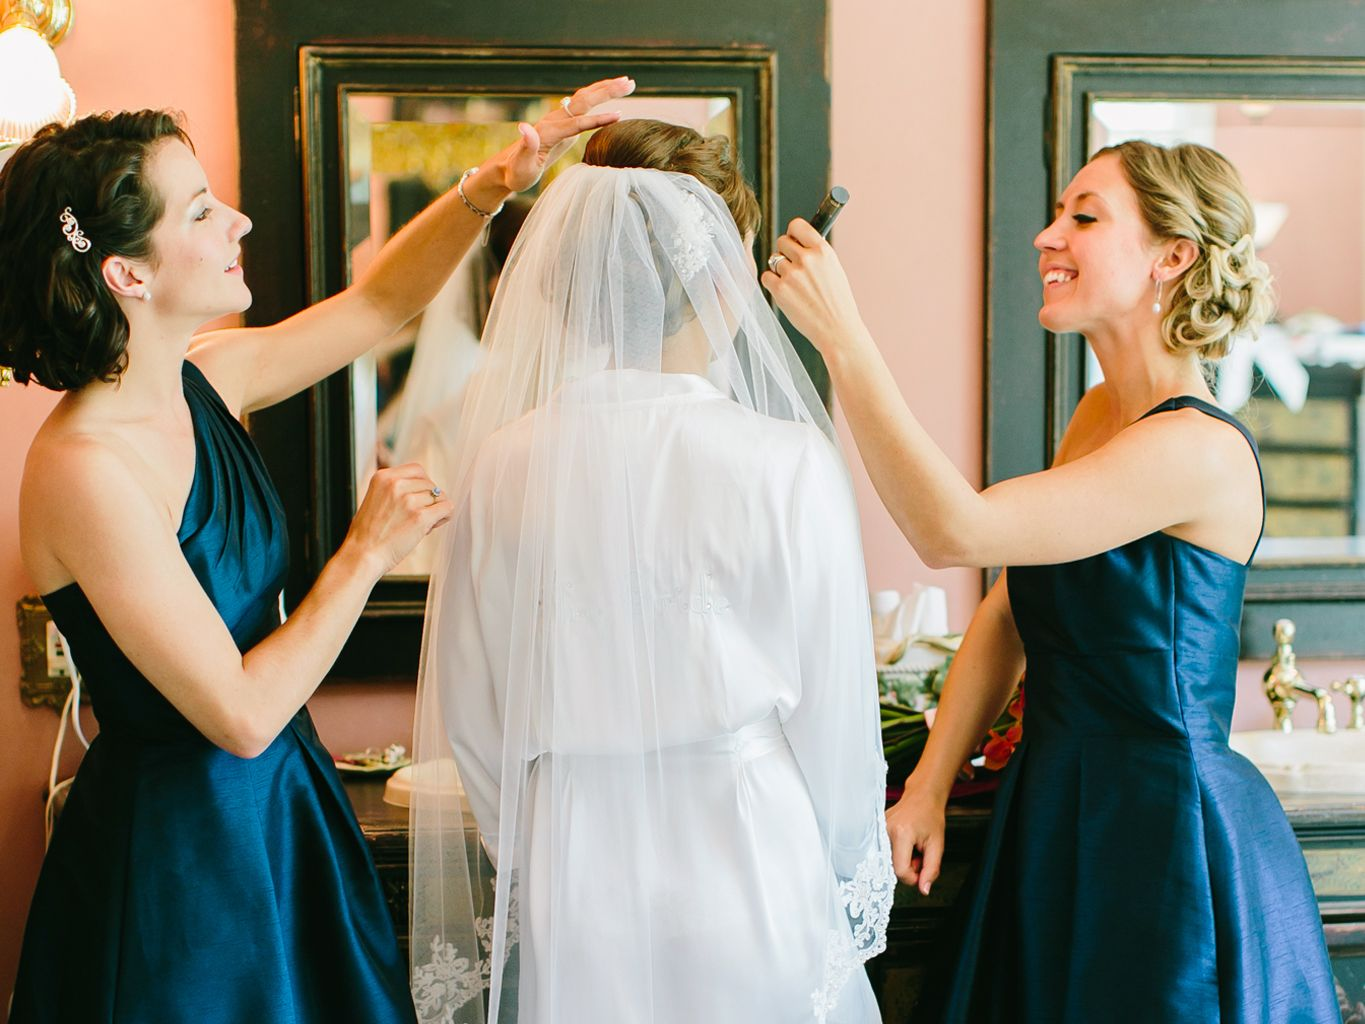 Beauty Appointments You Need to Make Before Your Wedding